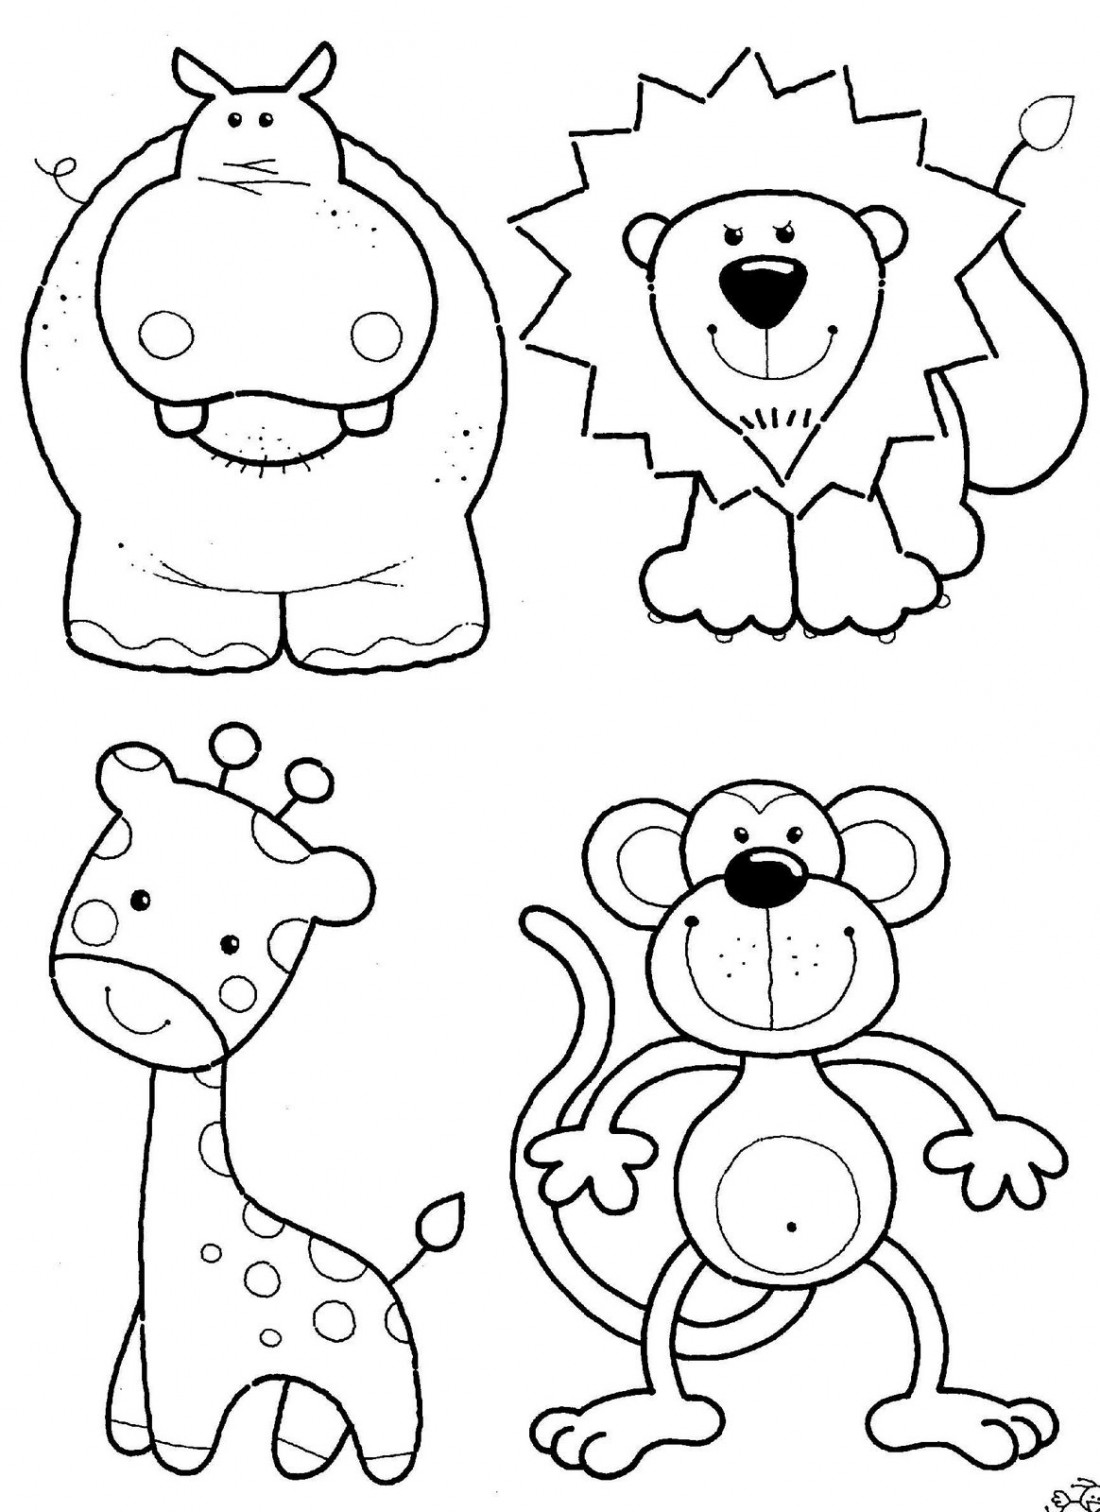 Toddler Coloring Pages At Getdrawings Com Free For Personal Use